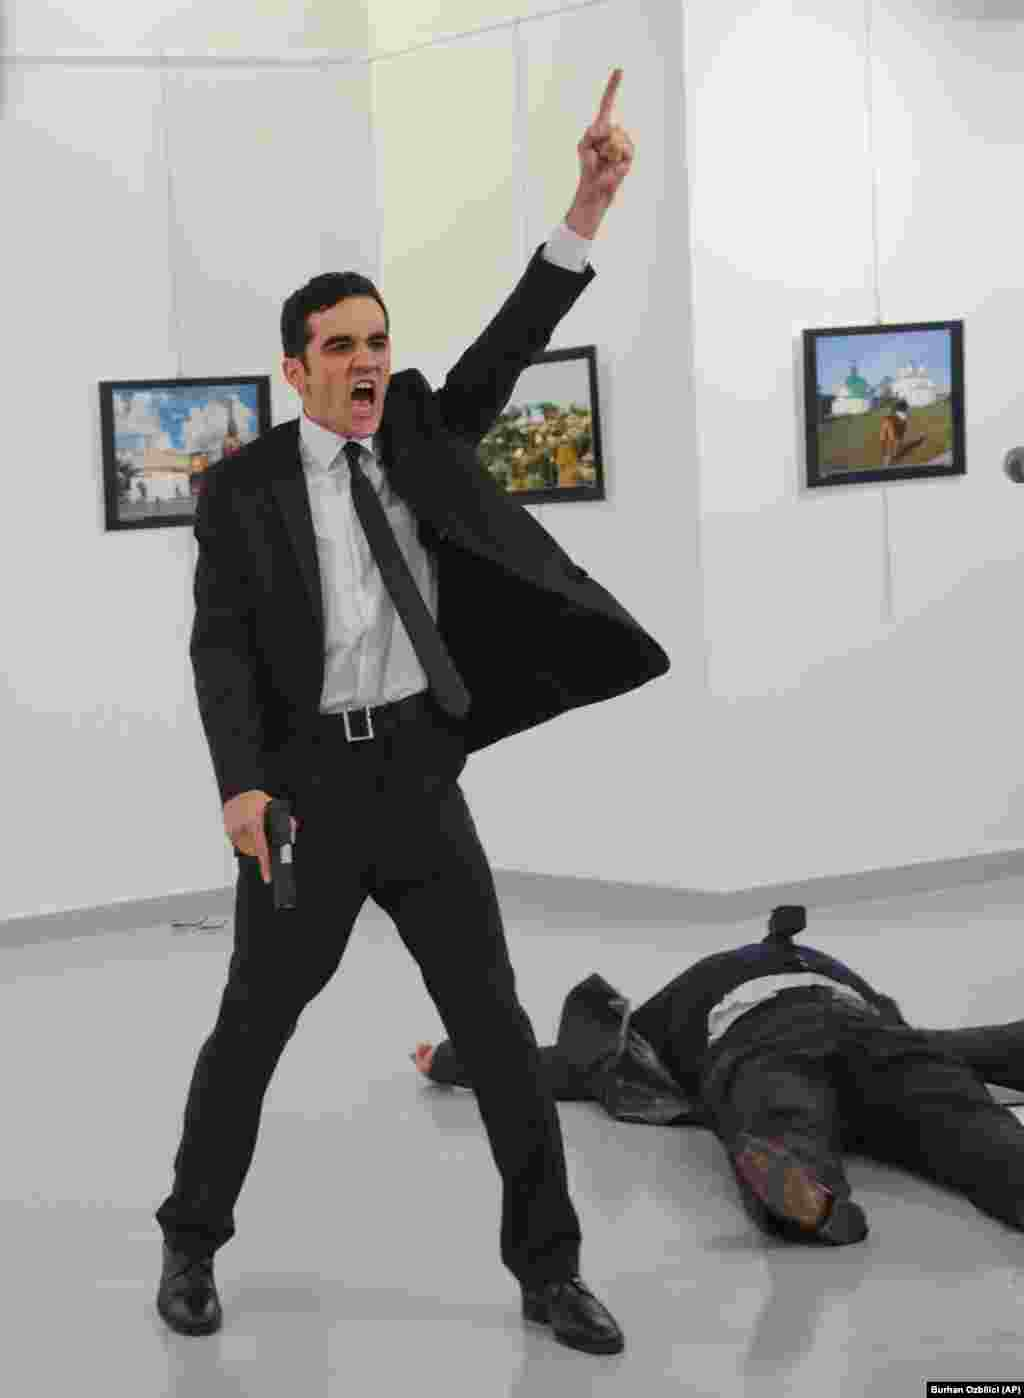 "An off-duty Turkish police officer, Mevlut Mert Altintas, shouts ""Don't forget Aleppo!"" moments after he shot and killed the Russian ambassador to Turkey, Andrei Karlov, at a photo exhibition in Ankara on December 19. Altintas was later killed by police in a shoot-out. (AP/Burhan Ozbilici)"